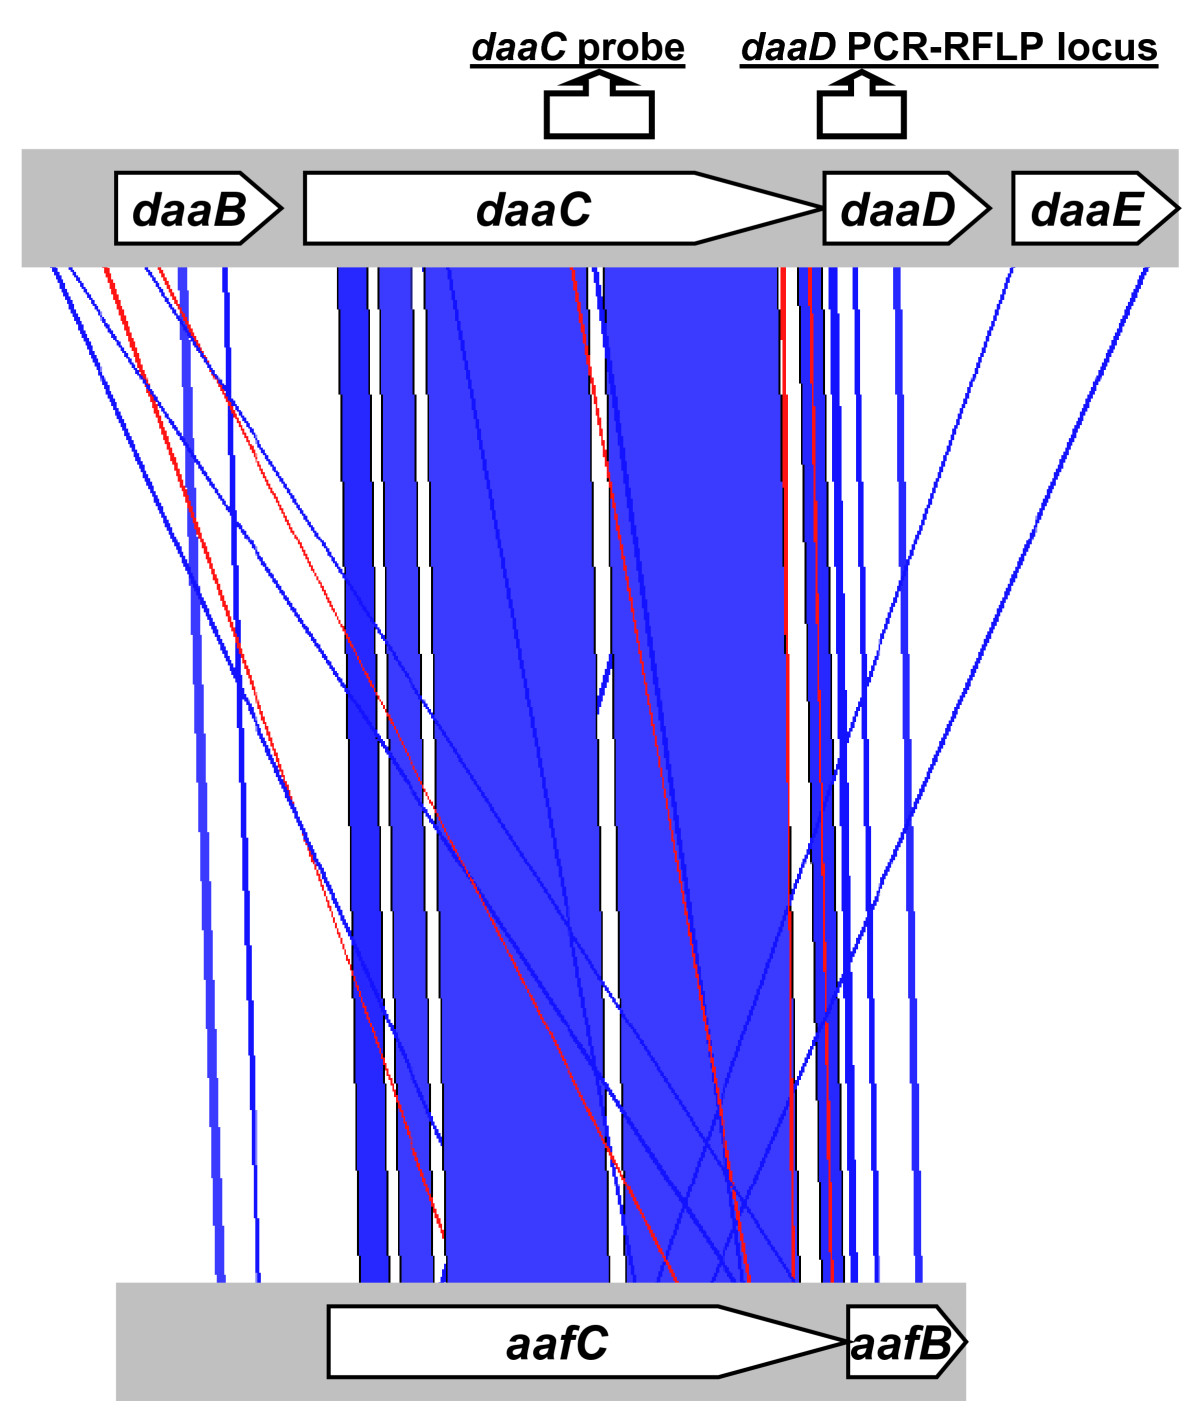 http://static-content.springer.com/image/art%3A10.1186%2F1471-2180-9-269/MediaObjects/12866_2009_Article_940_Fig2_HTML.jpg